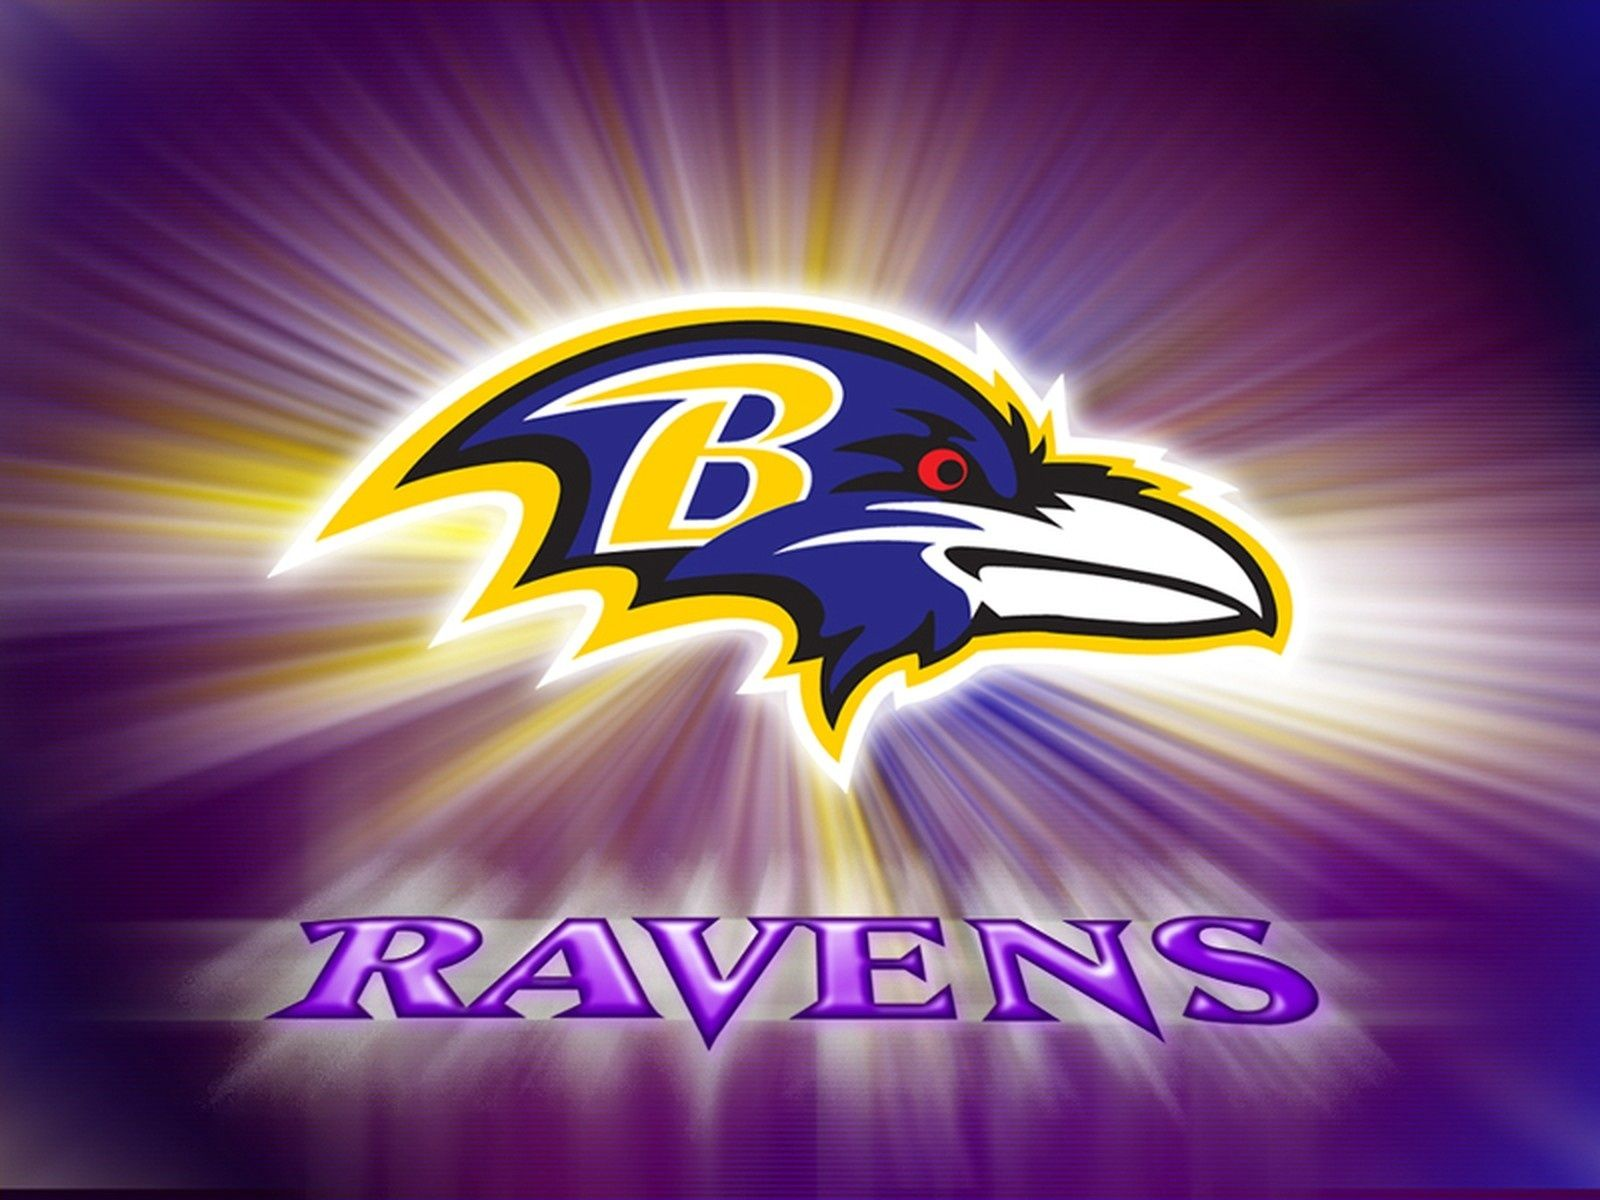 ravens wallpaper Baltimore Ravens wallpaper HD background 1600x1200